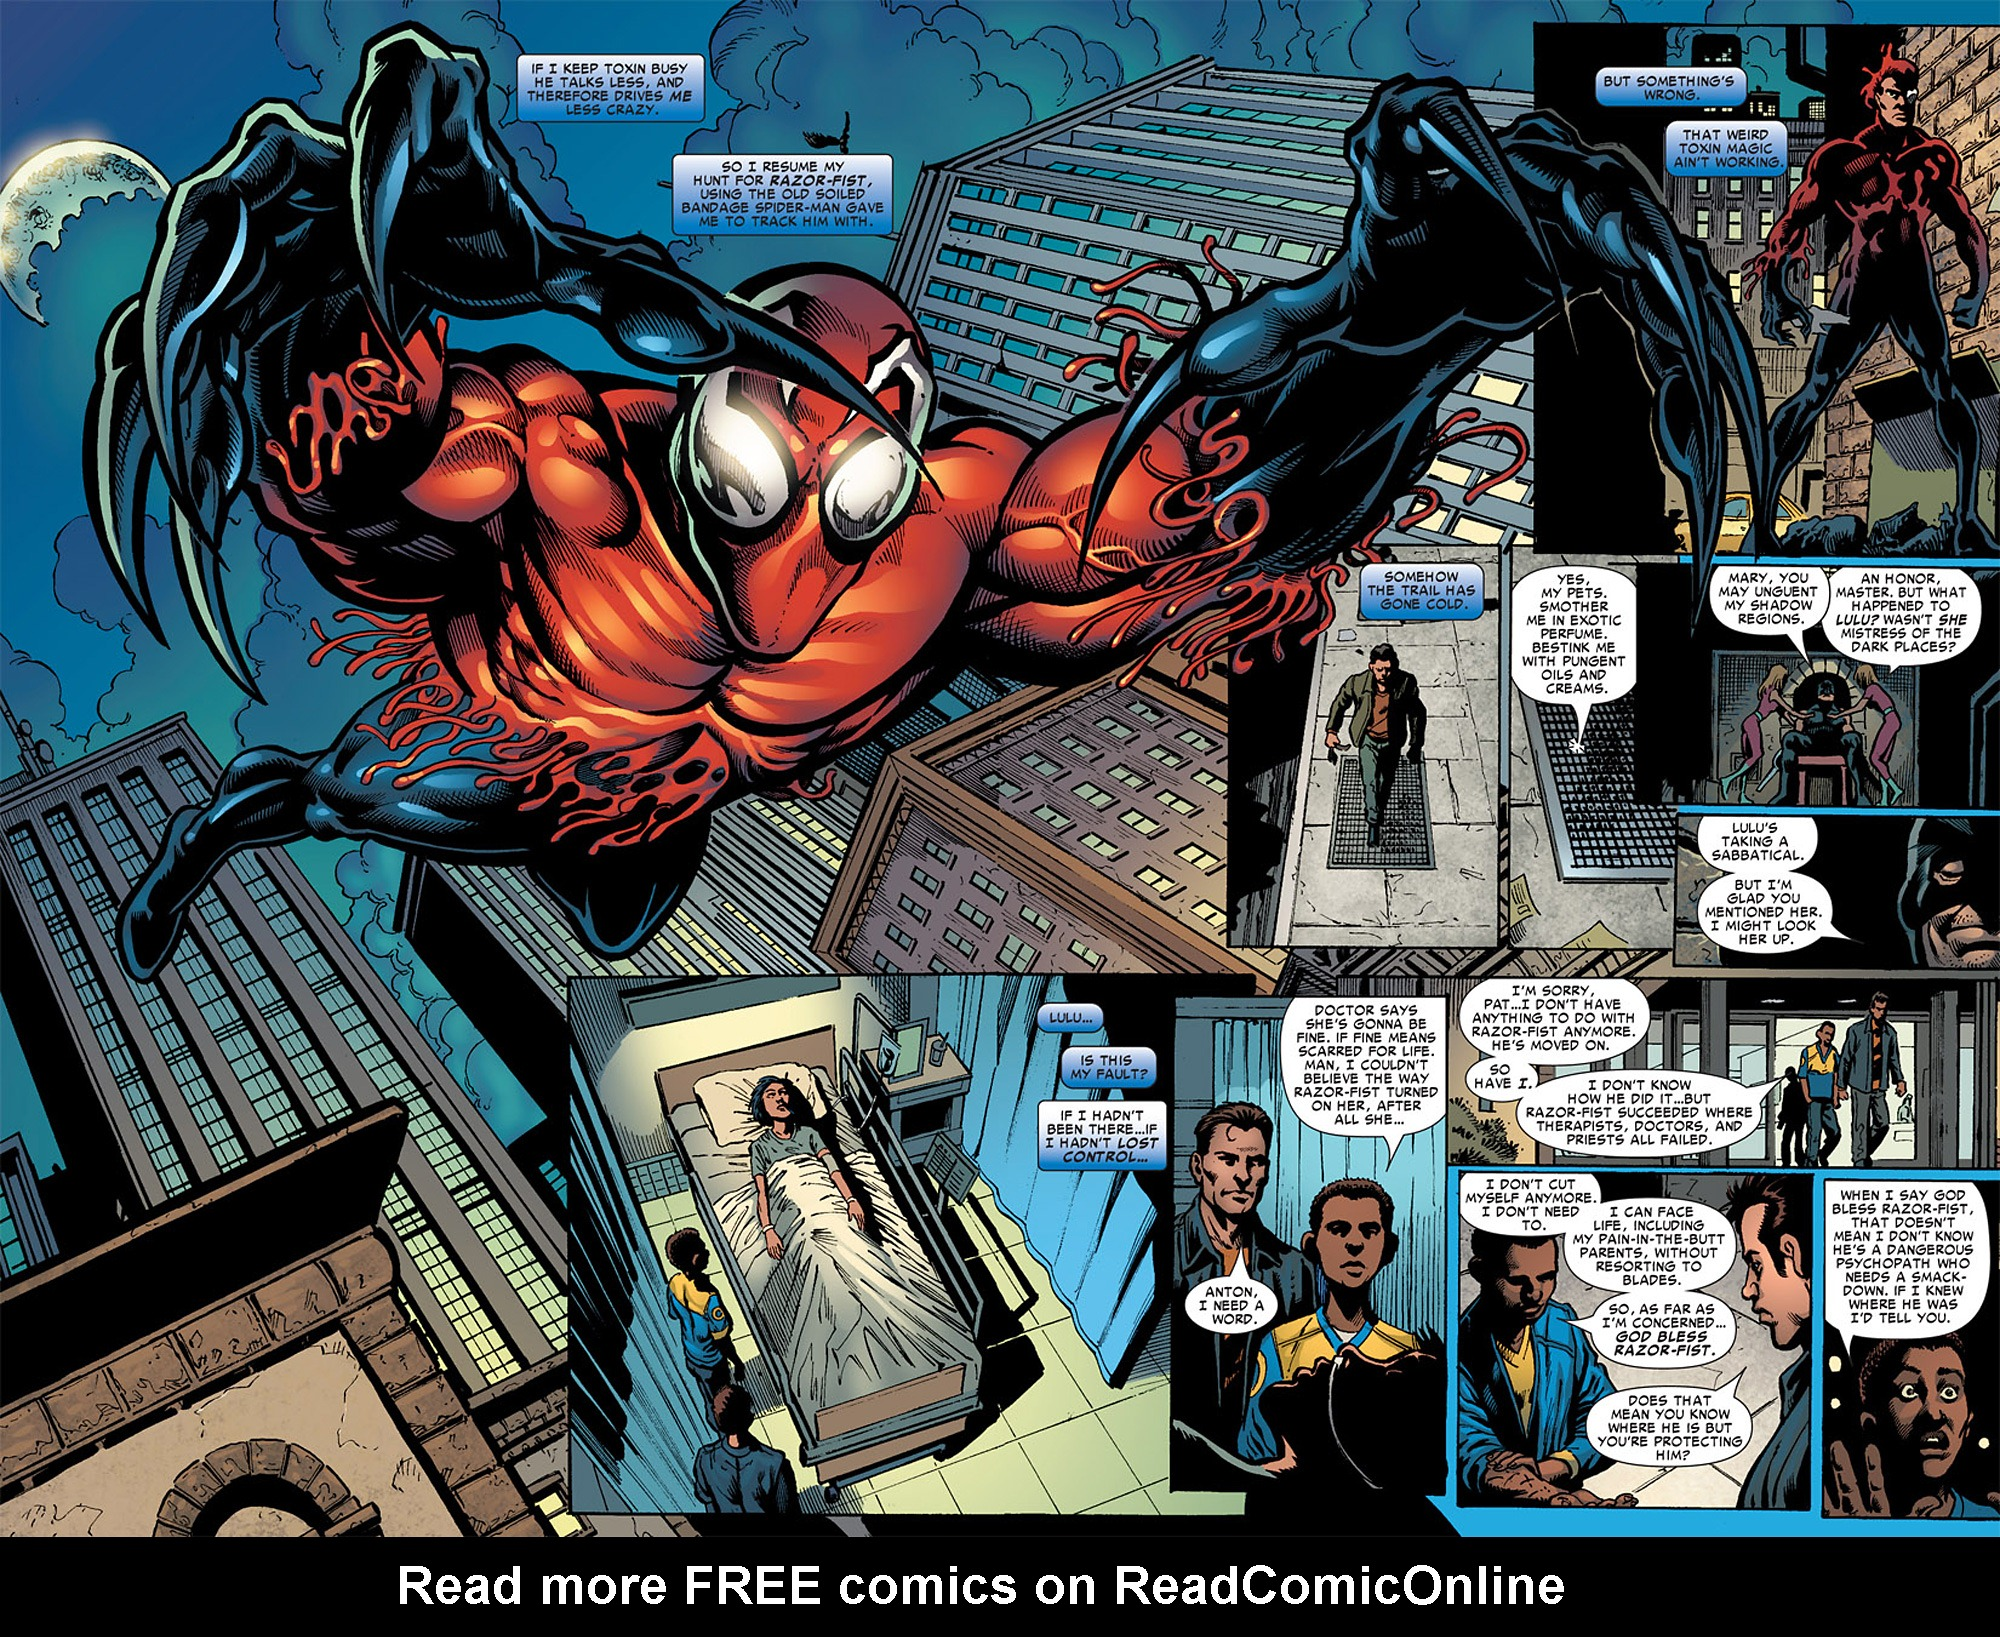 Read online Toxin comic -  Issue #3 - 15